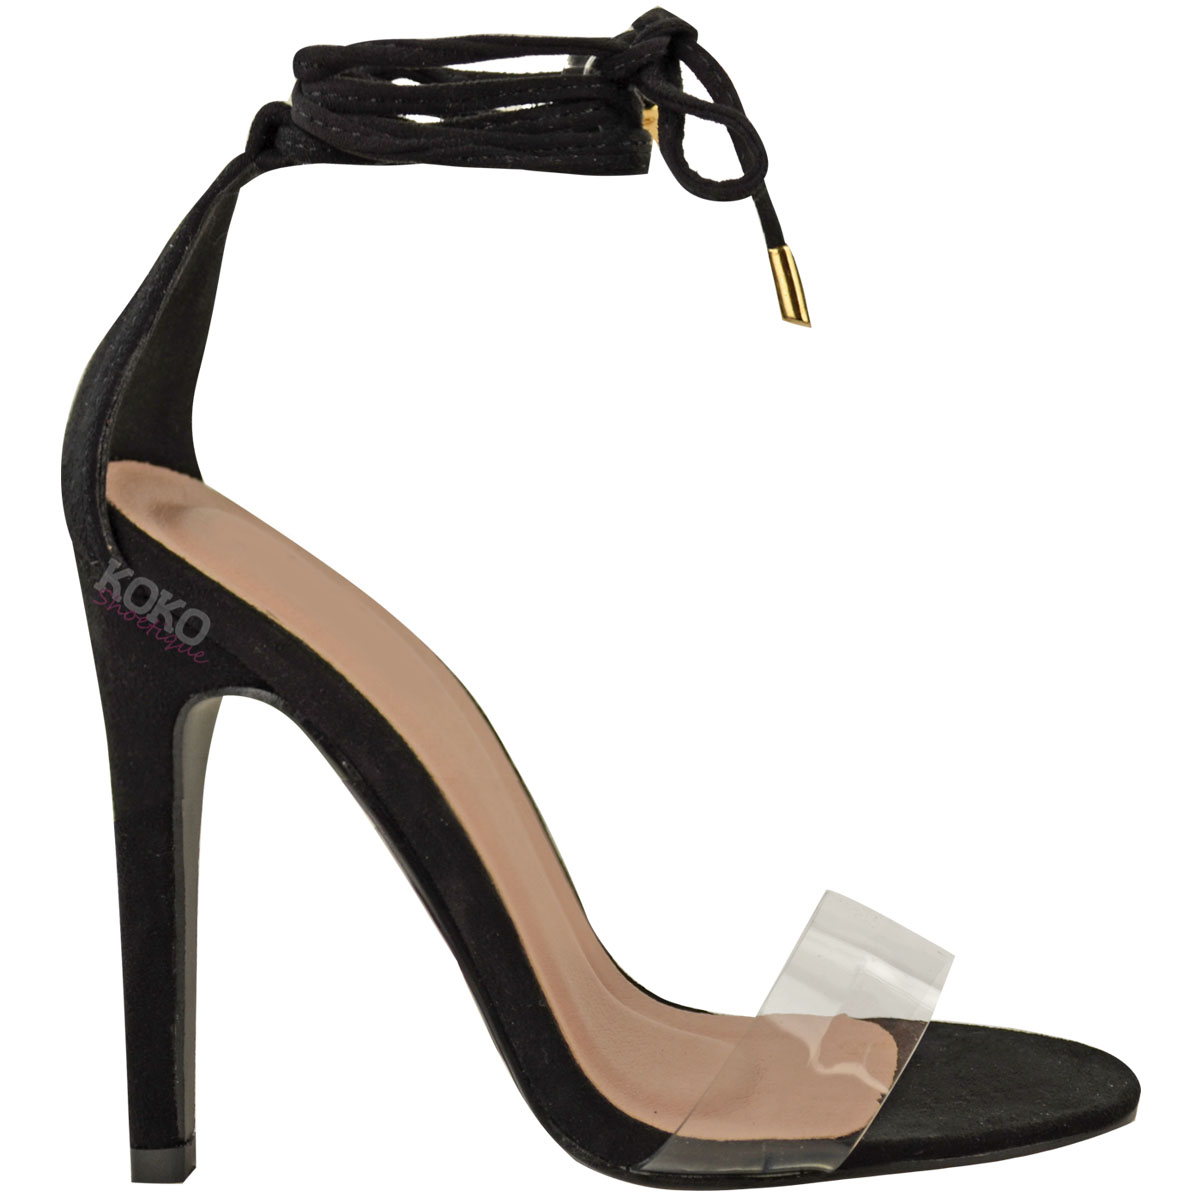 56212a3233dca8 Womens Ladies High Heel Barely There Clear Perspex Ankle Strappy ...